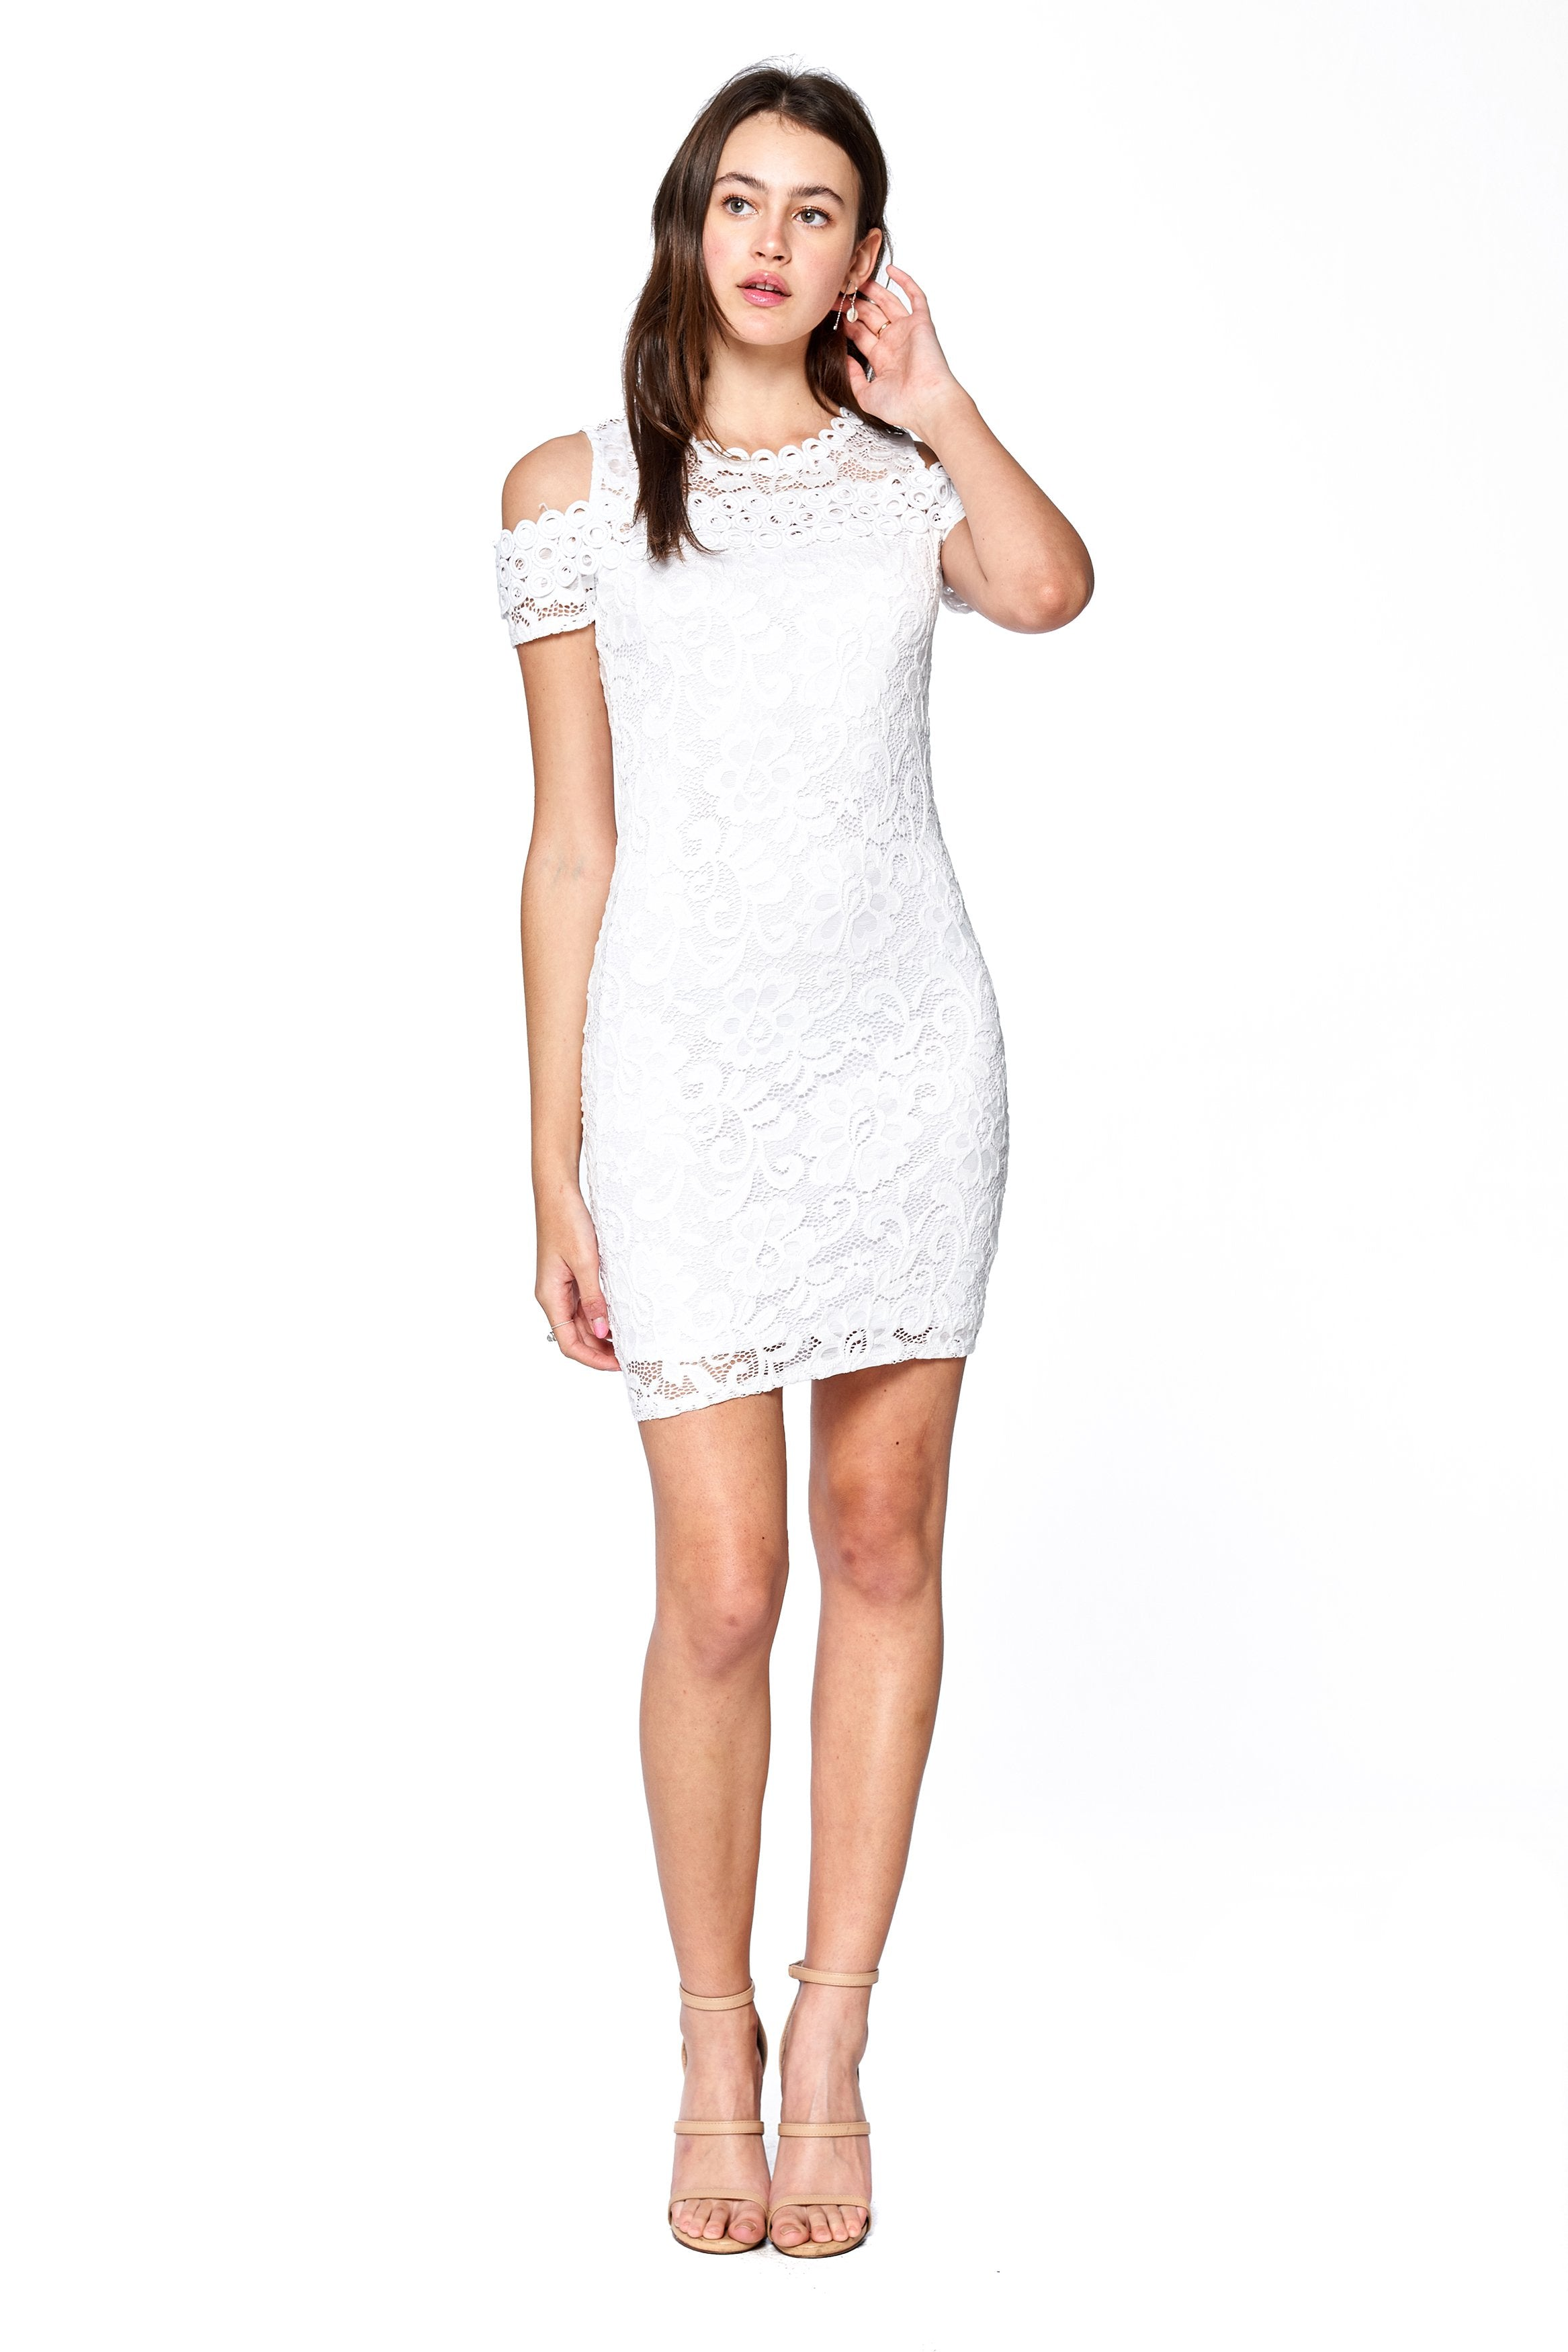 Khanomak Women's Short Sleeve Cold Shoulder Lace Bodycon Dress